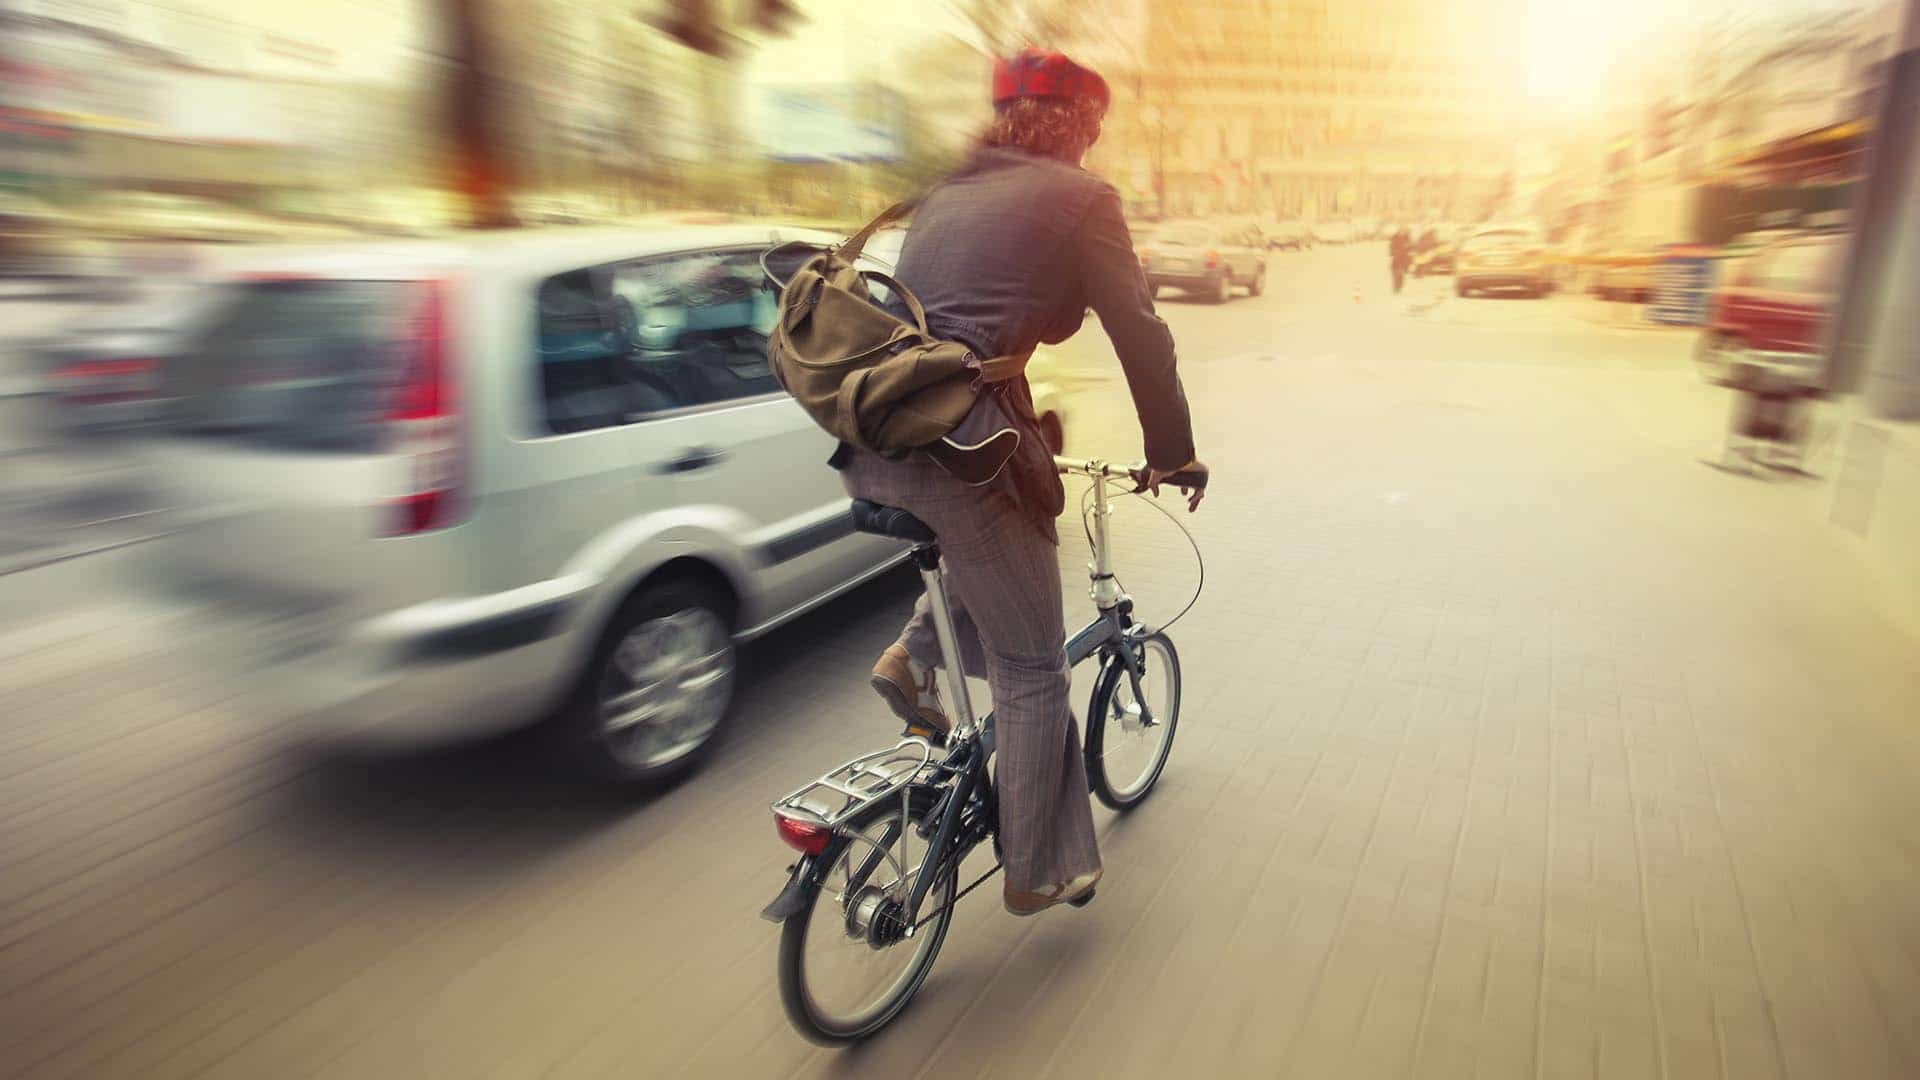 Bicycle-Car Accidents: Frequently Asked Questions